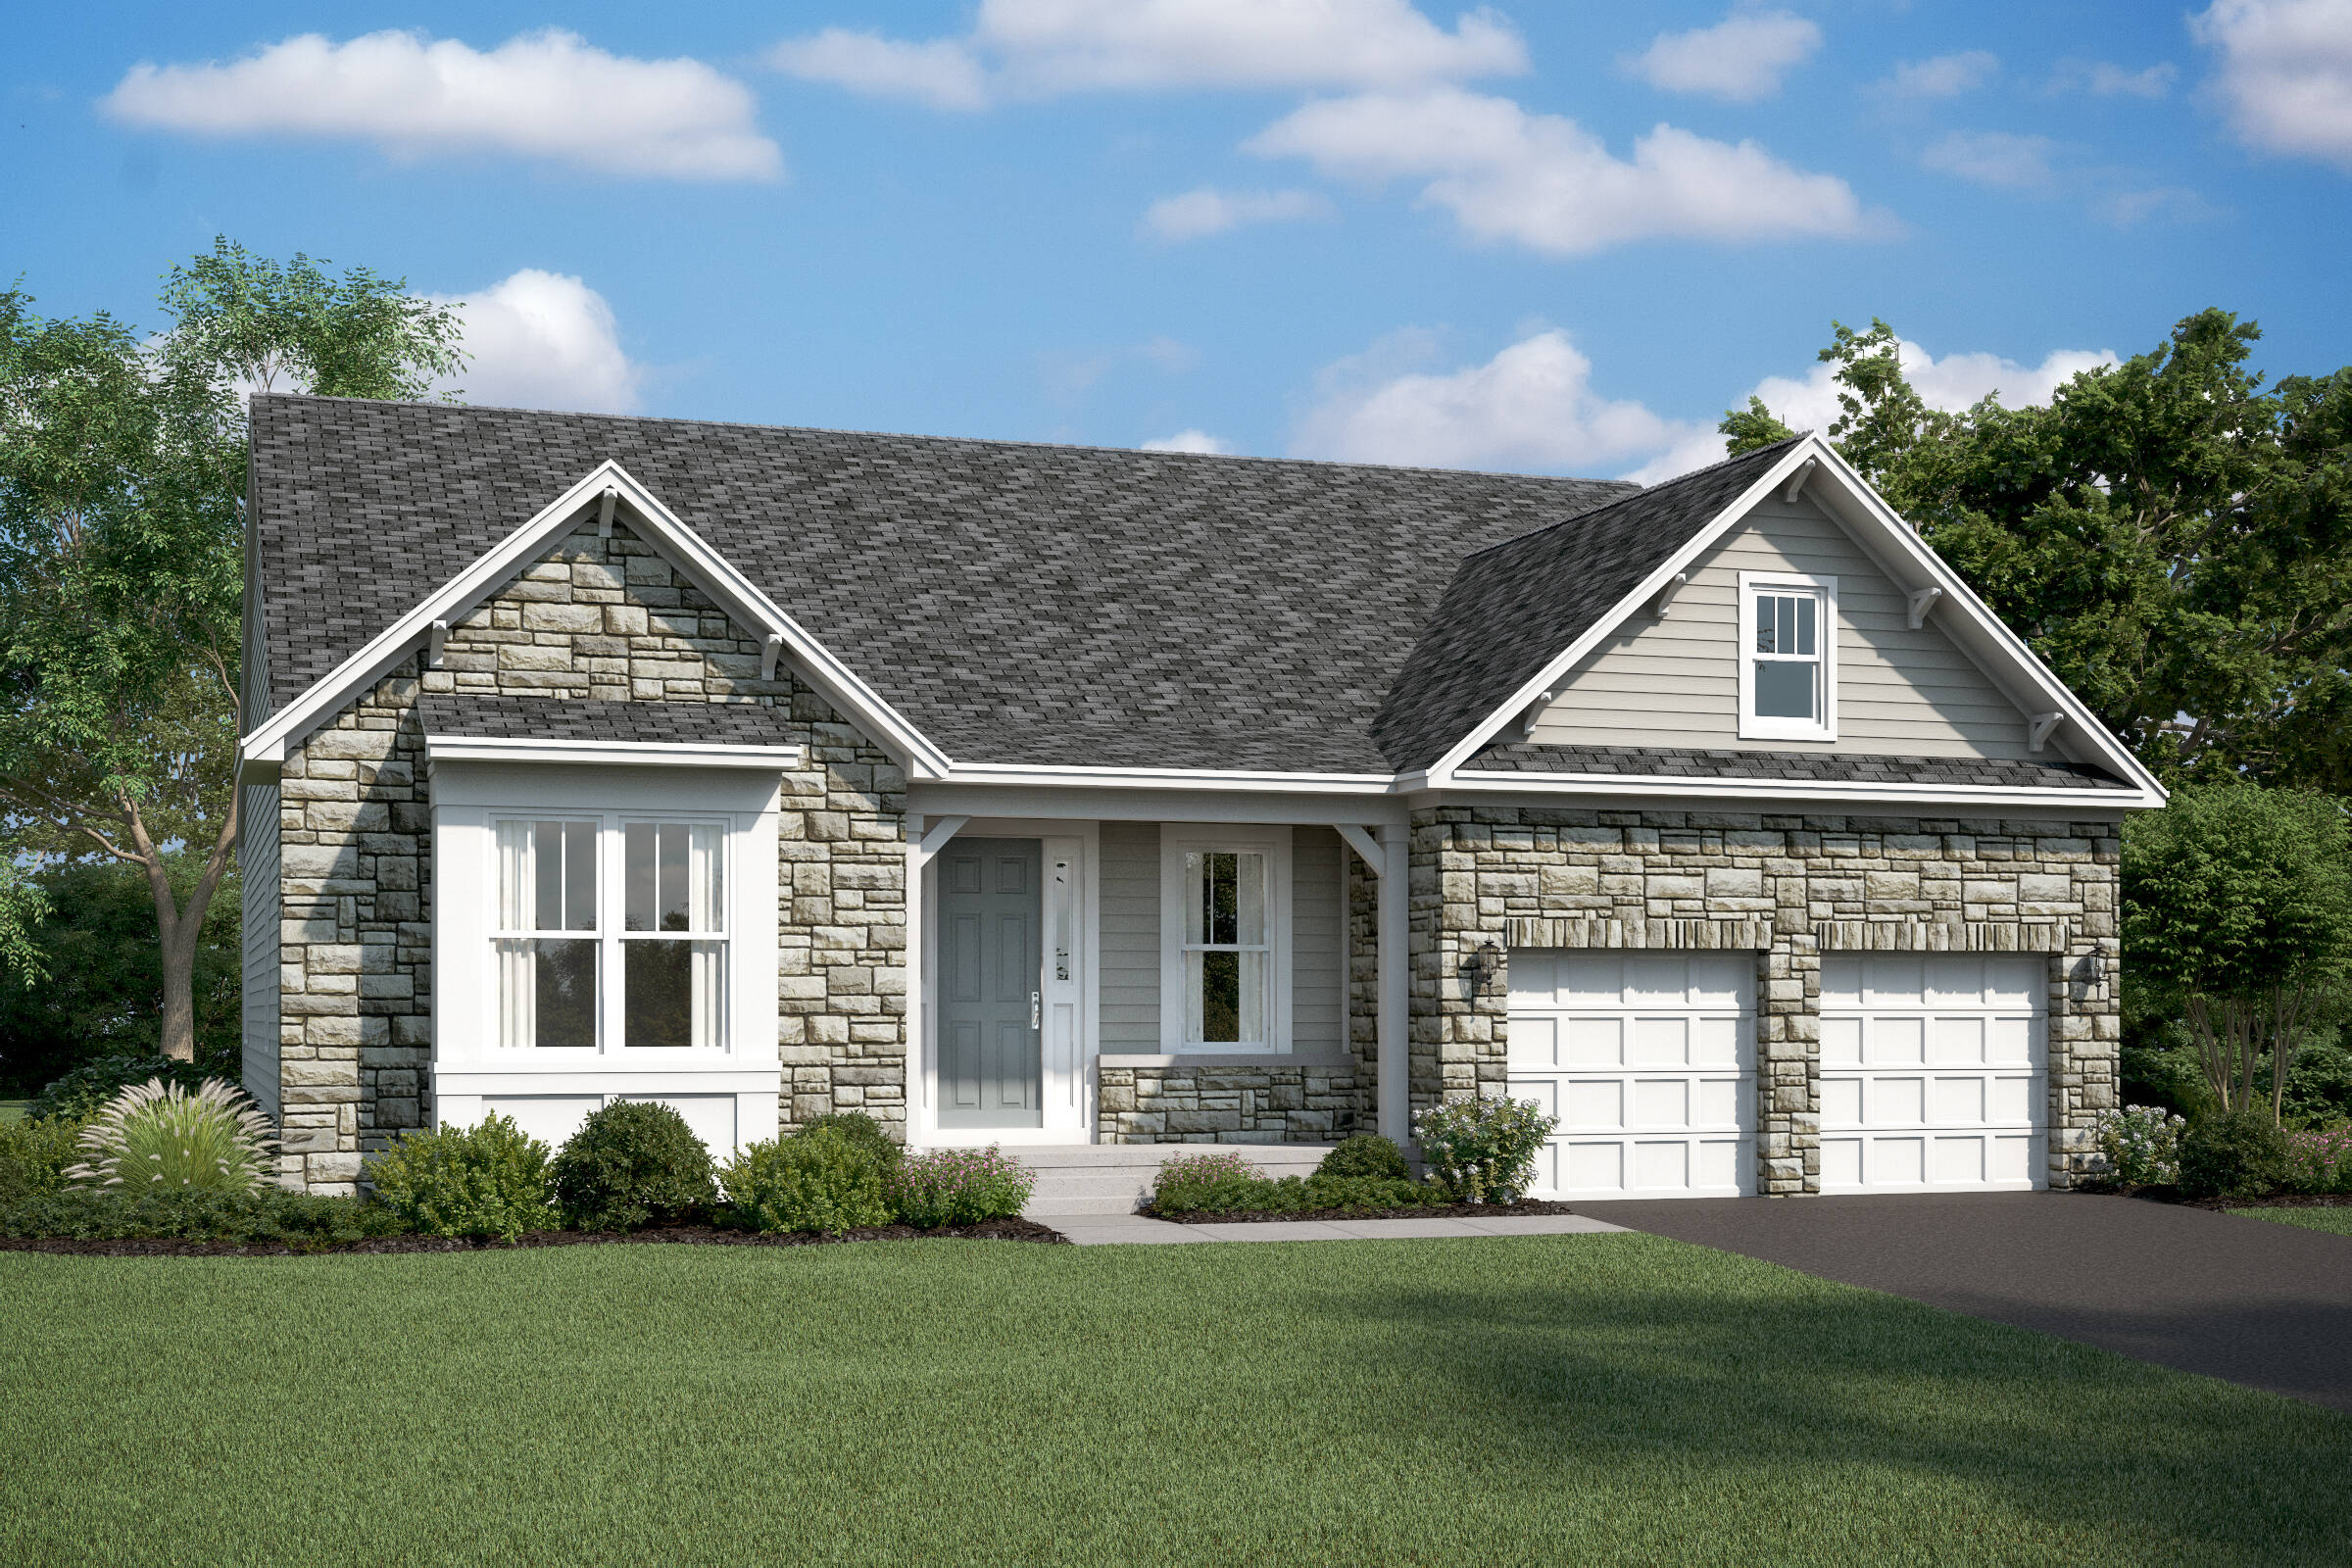 st michael ft new homes at leeland station in virginia